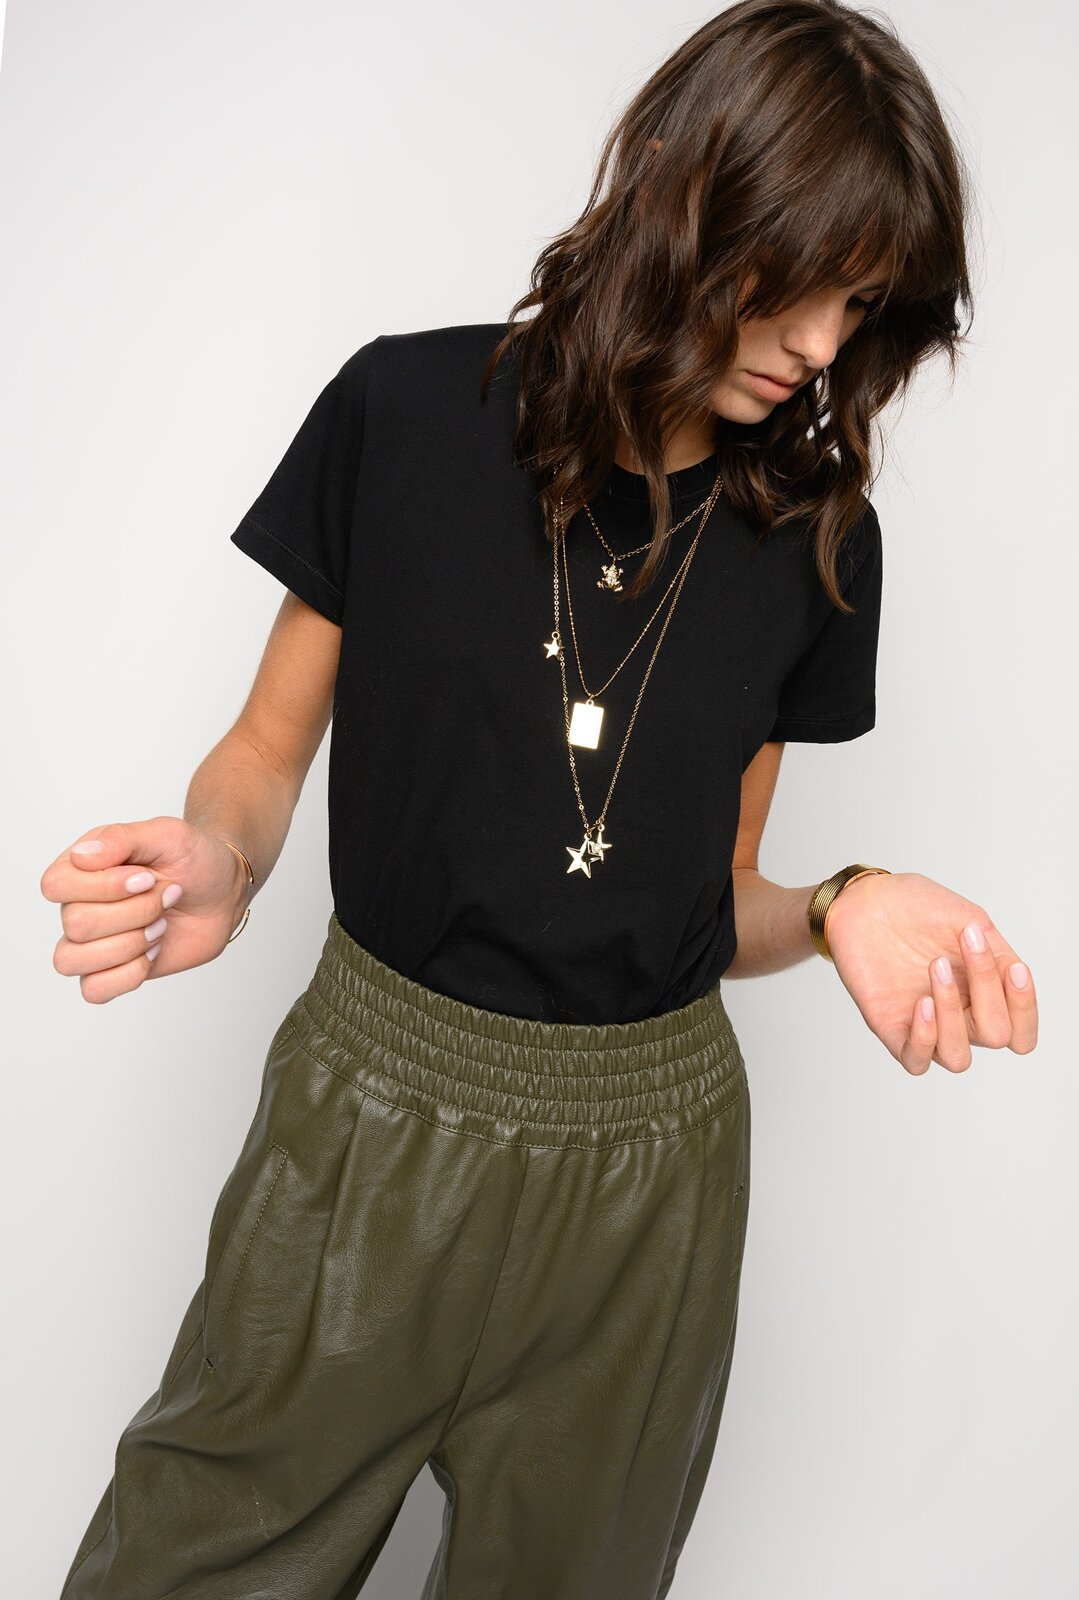 T-Shirt With Star Necklace - Pinko